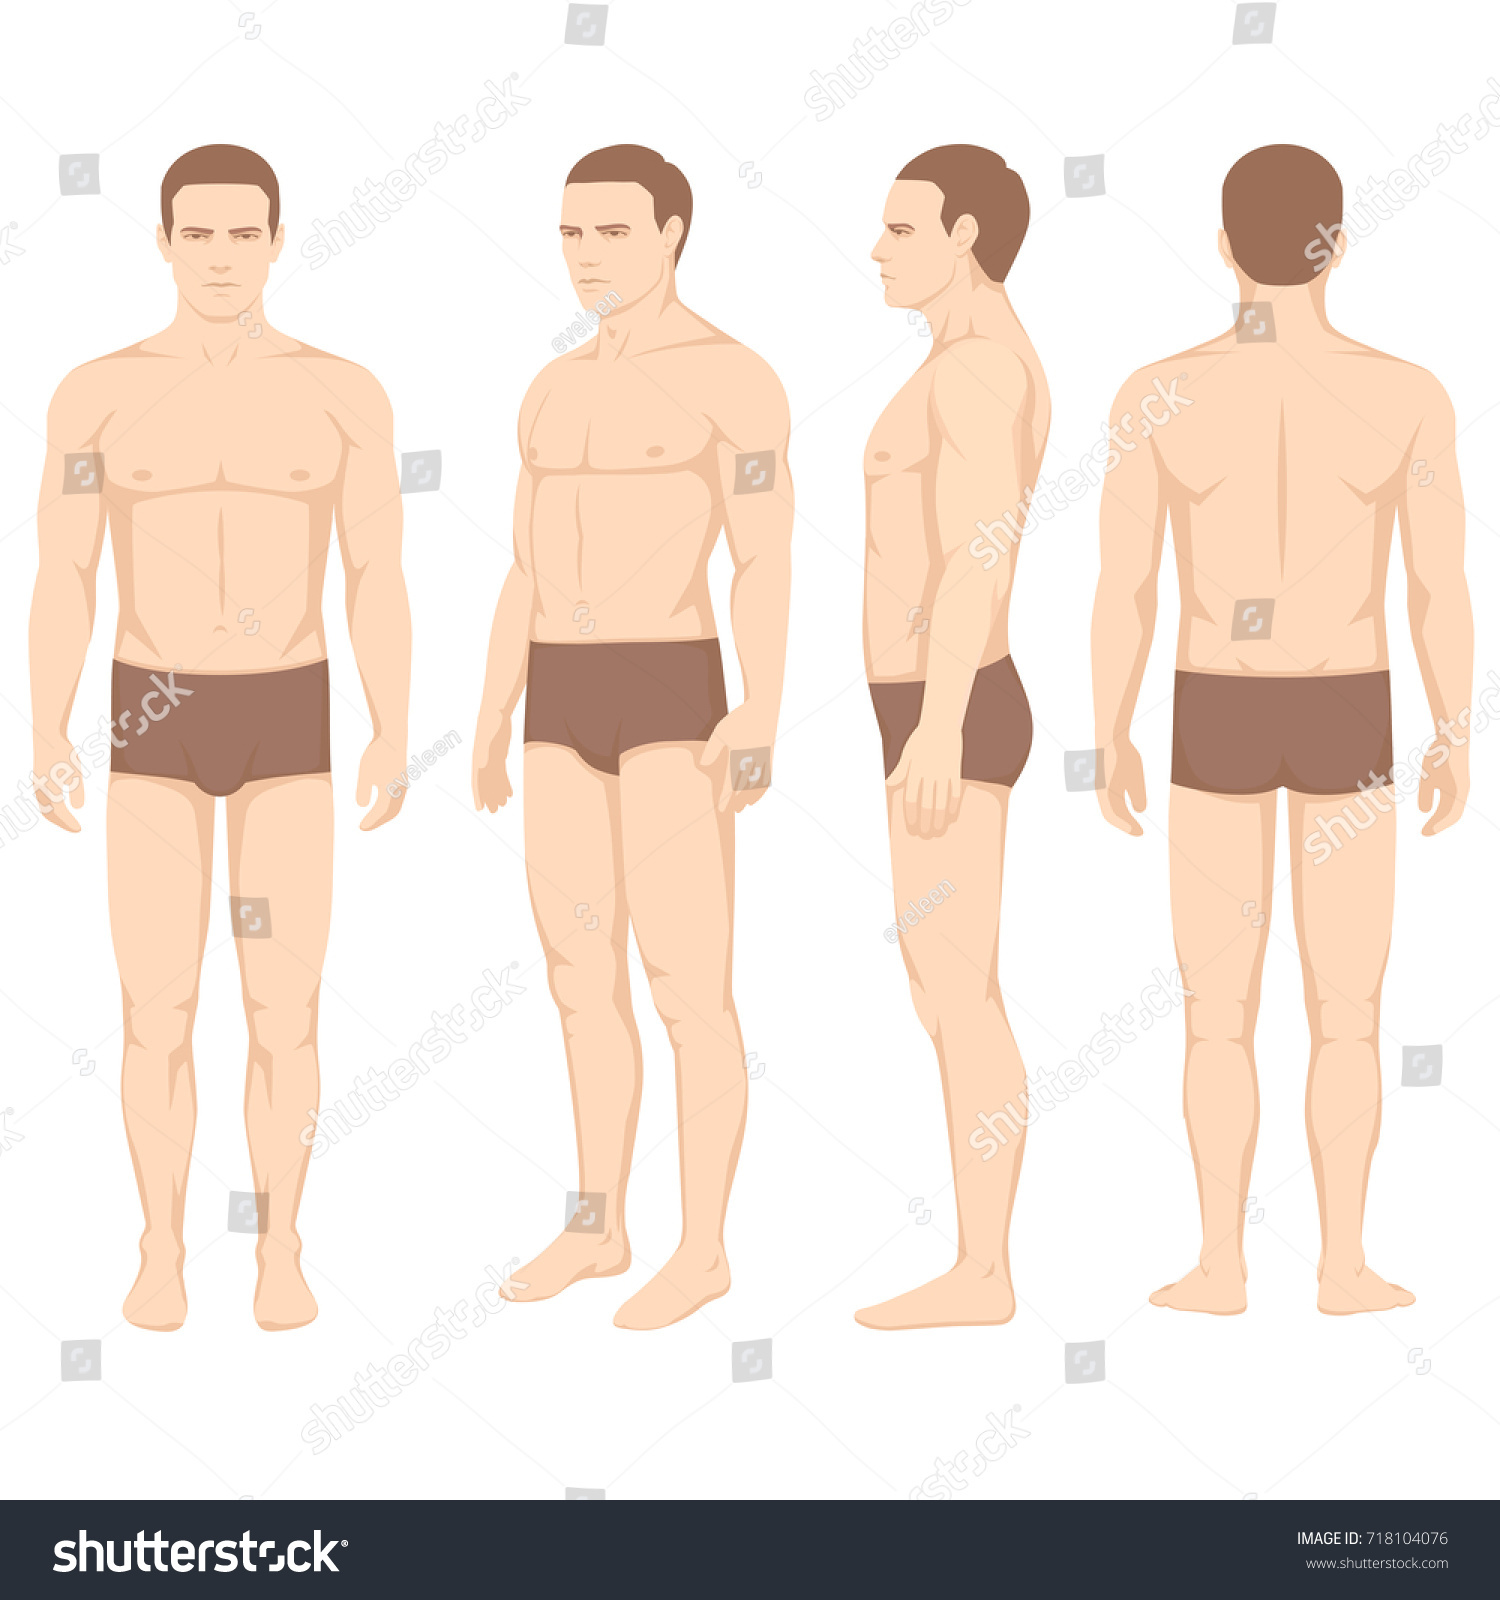 human body anatomy vector man silhouette stock vector royalty free 718104076 https www shutterstock com image vector human body anatomy vector man silhouette 718104076